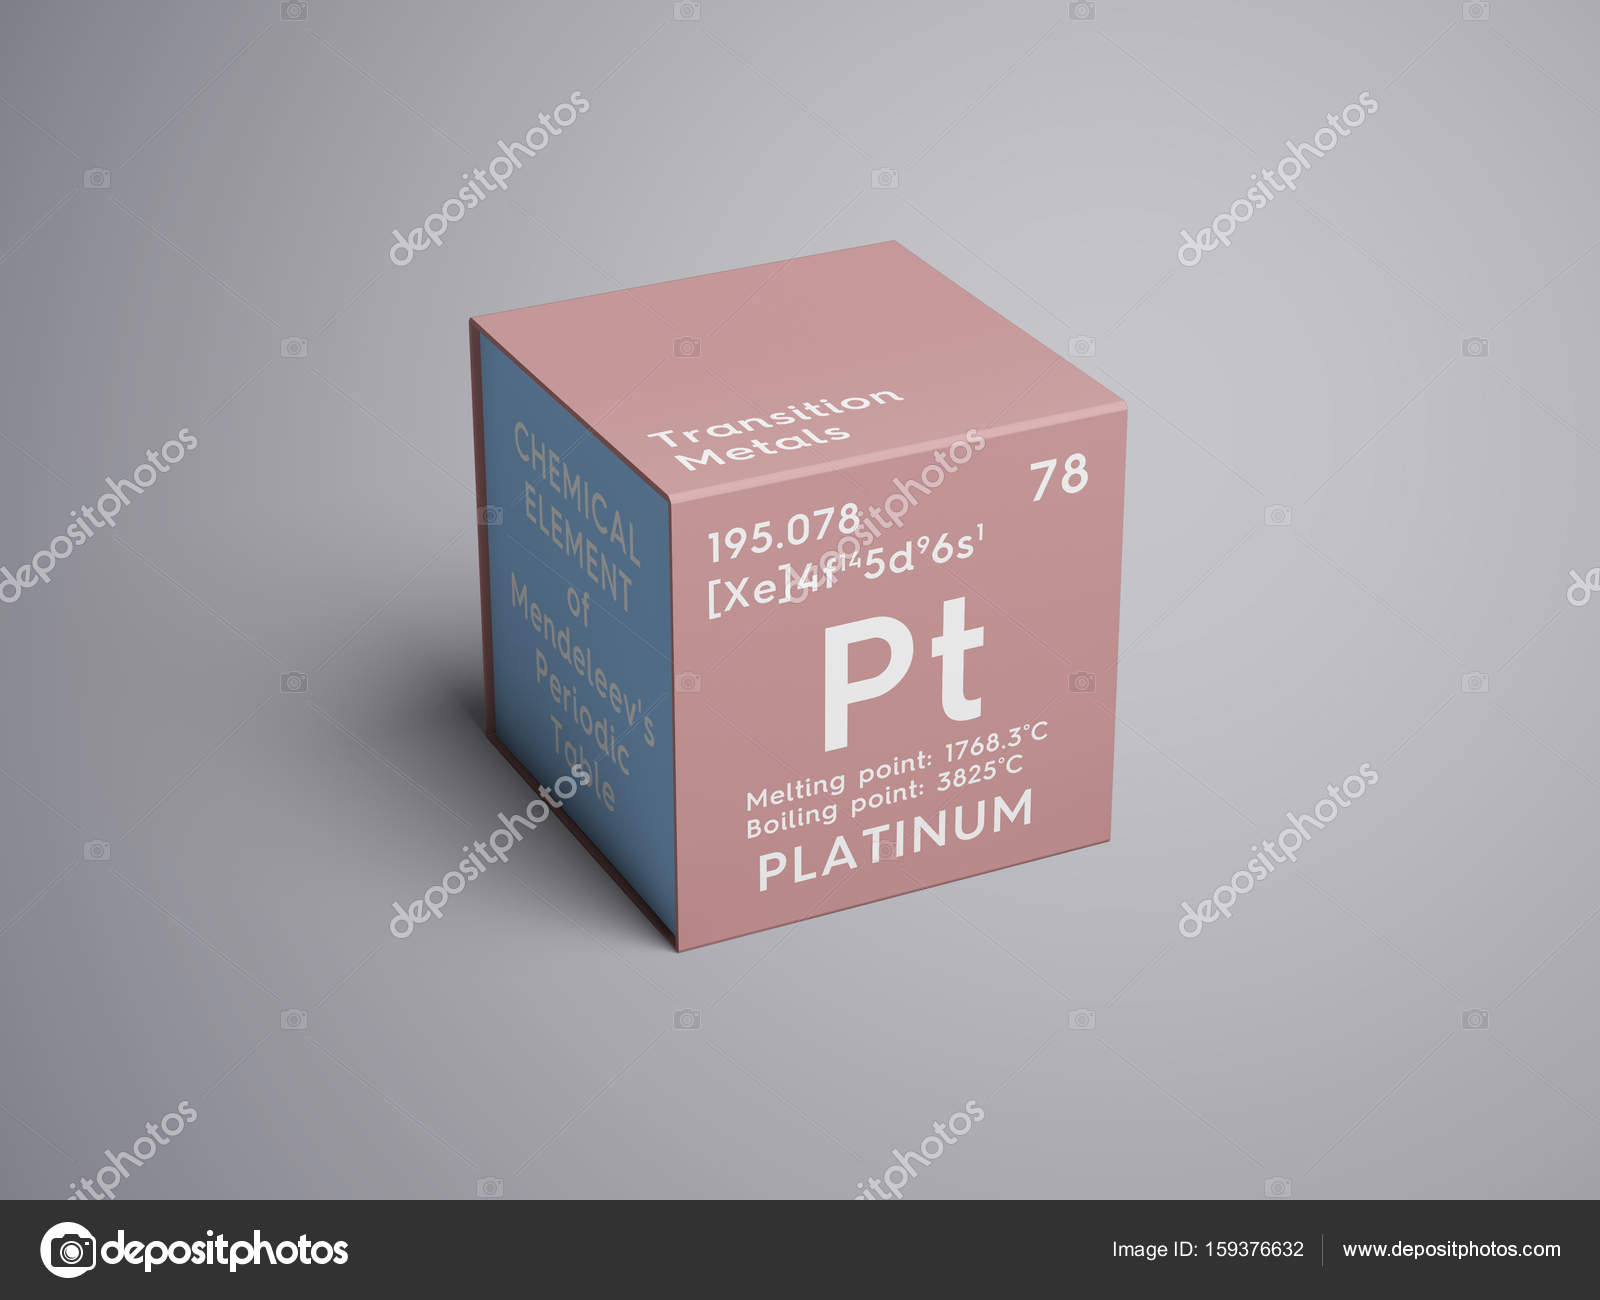 Platinum transition metals chemical element of mendeleevs transition metals chemical element of mendeleevs periodic table stock photo urtaz Image collections